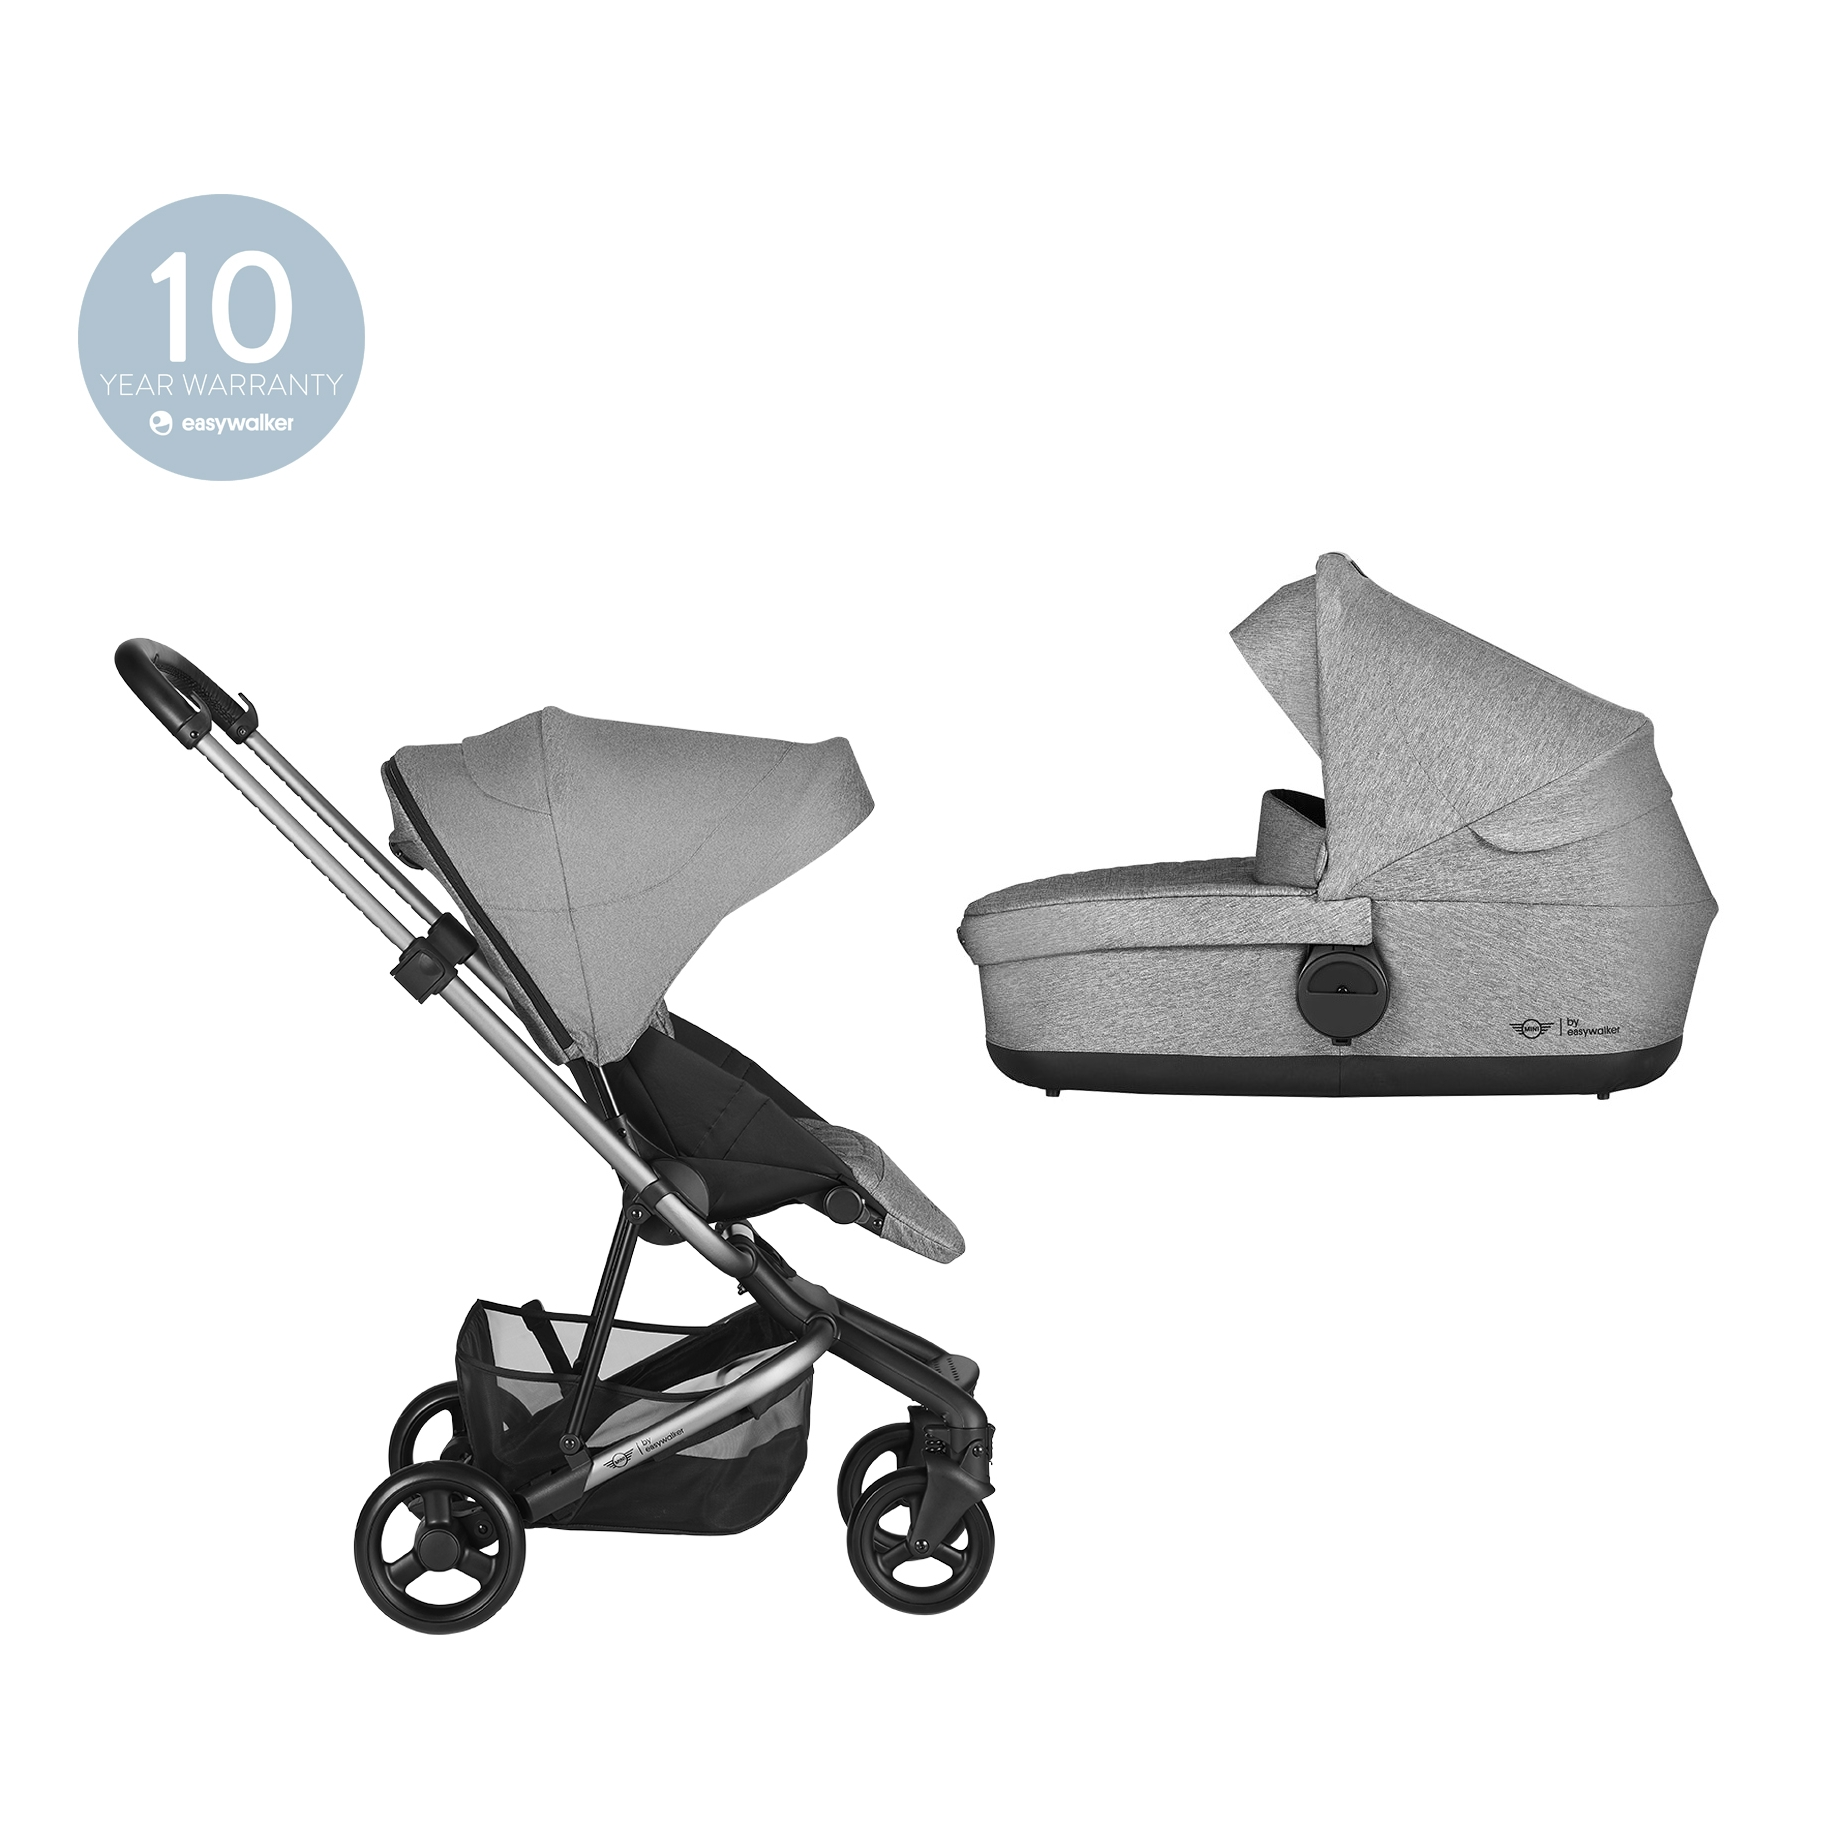 EASYWALKER Kočárek Soho Grey MINI by Easywalker - set